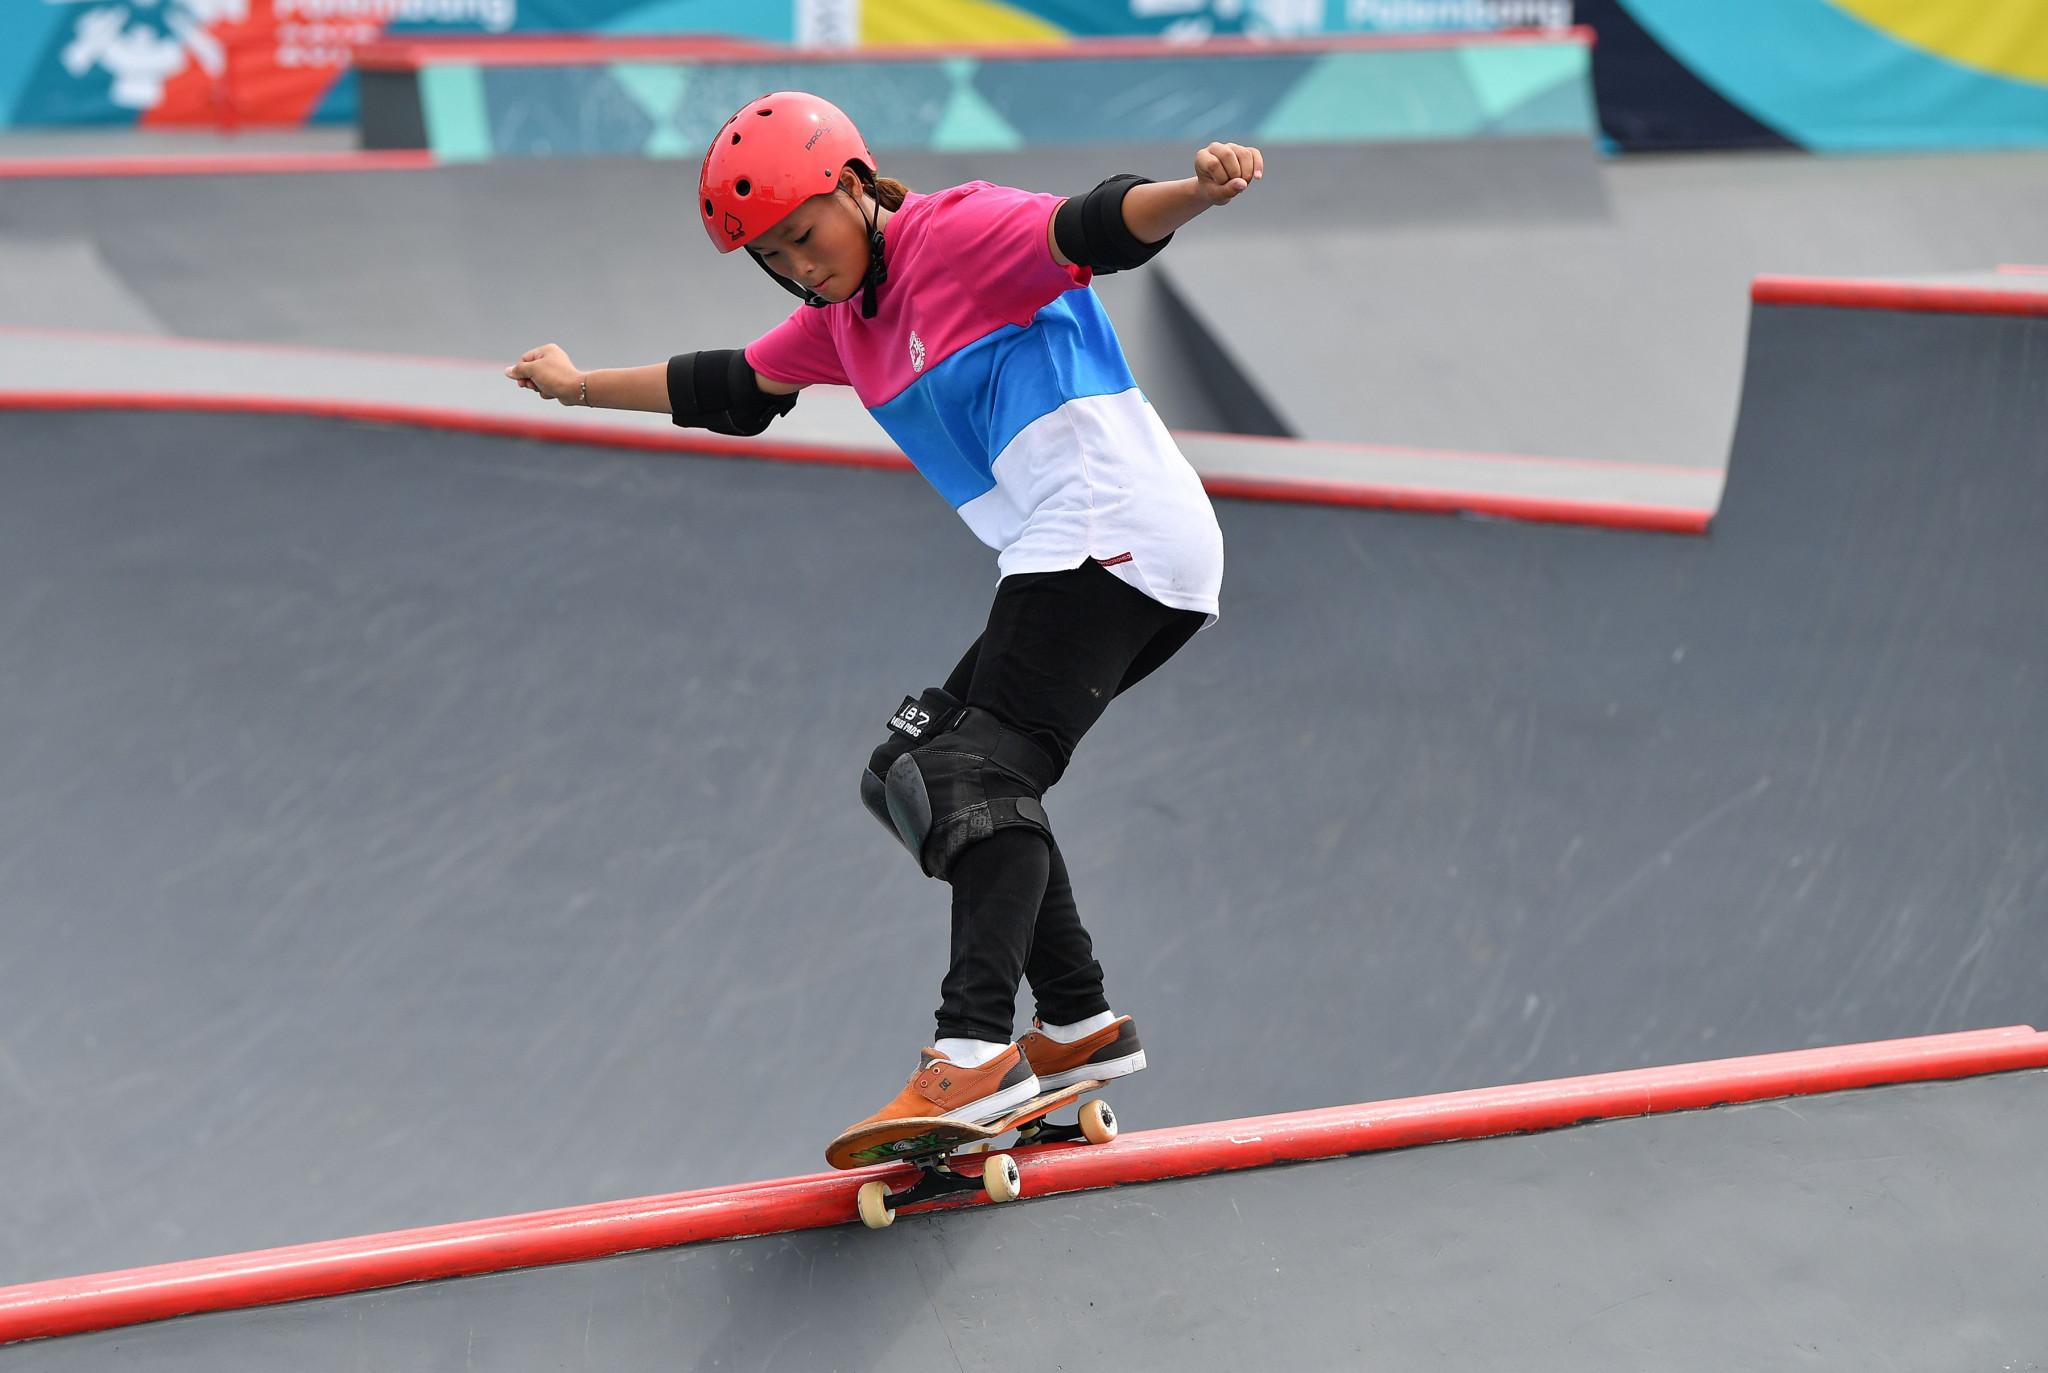 Sixteen-year-old Sakura Yosozumi was among the winners on the sole day of skateboarding medal action at the 2018 Asian Games in Jakarta and Palembang ©Getty Images